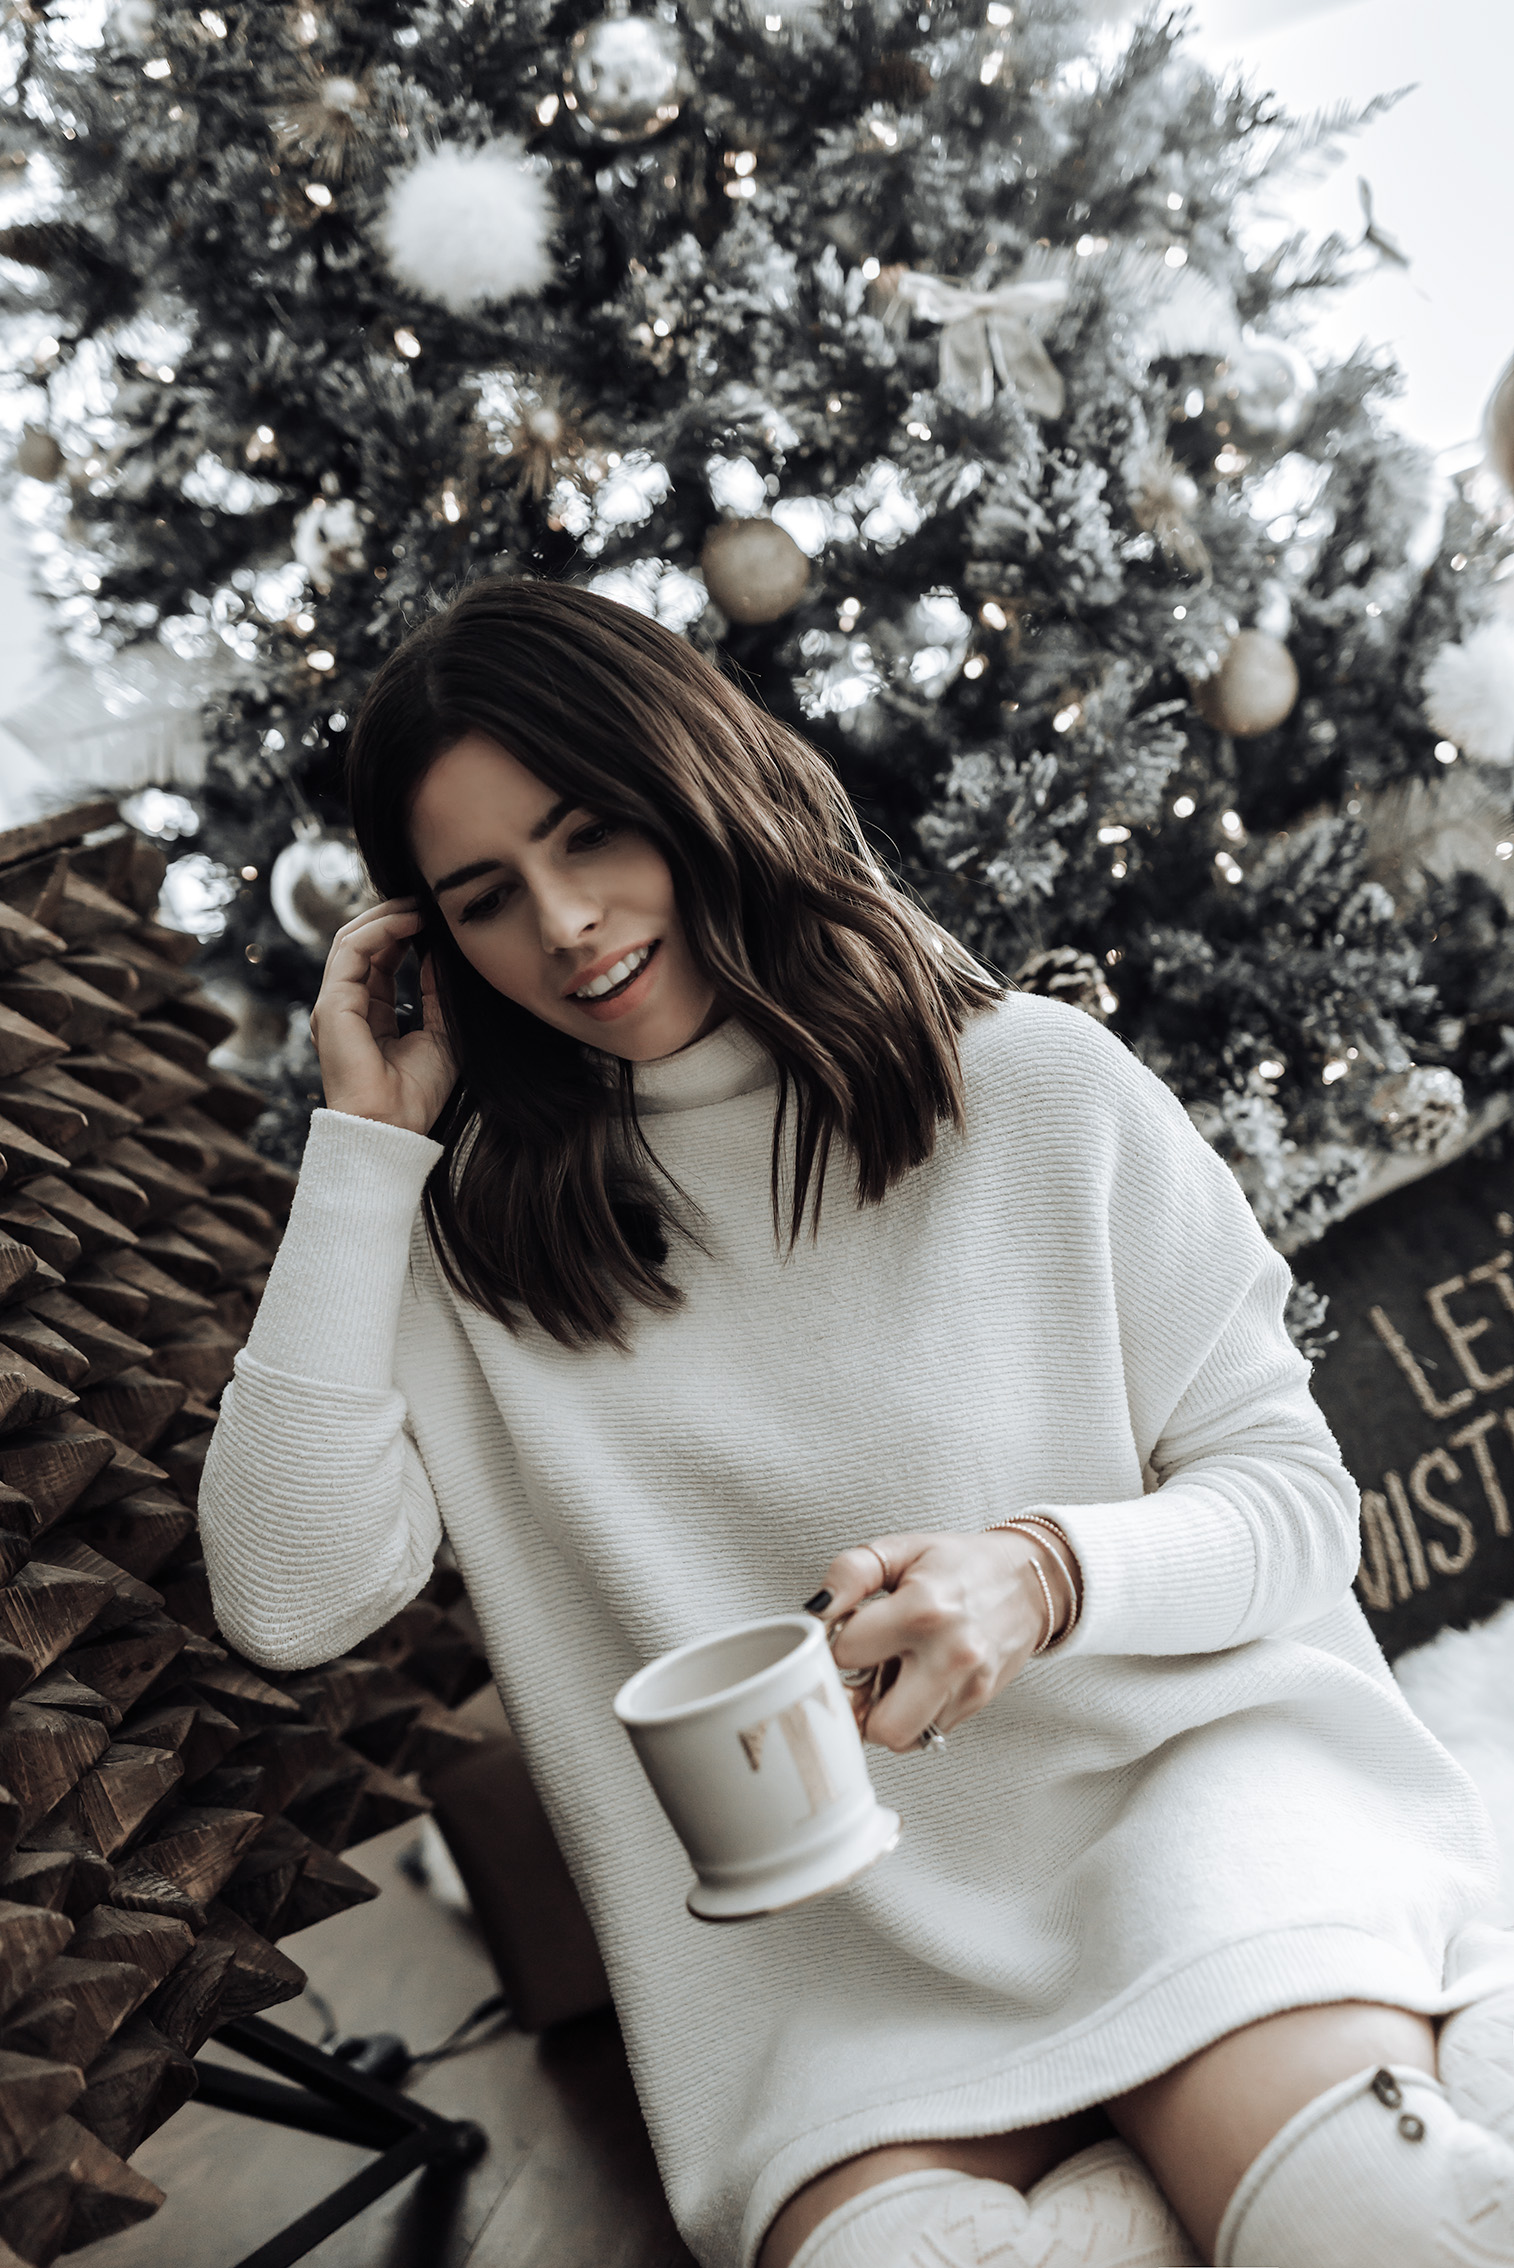 Tiffany Jais fashion and lifestyle blogger of Flaunt and Center | Houston fashion blogger | Simon G. | Streetstyle blog #ootd #jewelry #holidaystyle